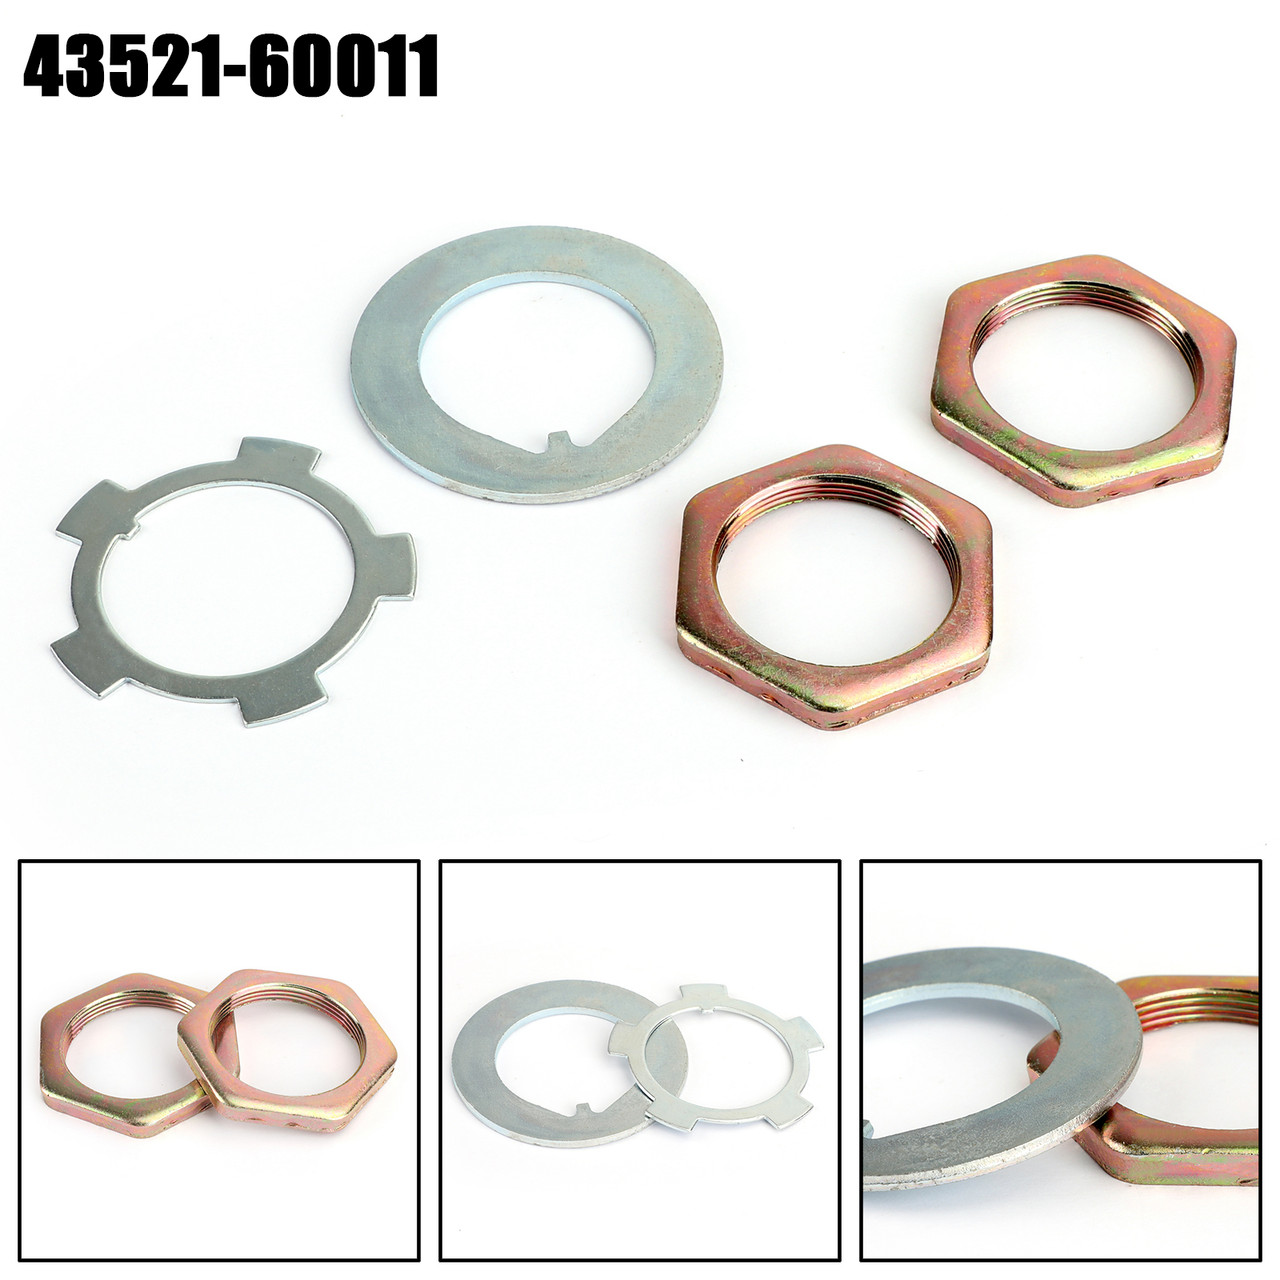 Front Axle Hub Spindle Lock Nut Washer Kit 43521-60011 For Toyota T100 92-98 4Runner 84-95 LX450 96-97 LX470 98-07 Cruiser 40 55 76-98